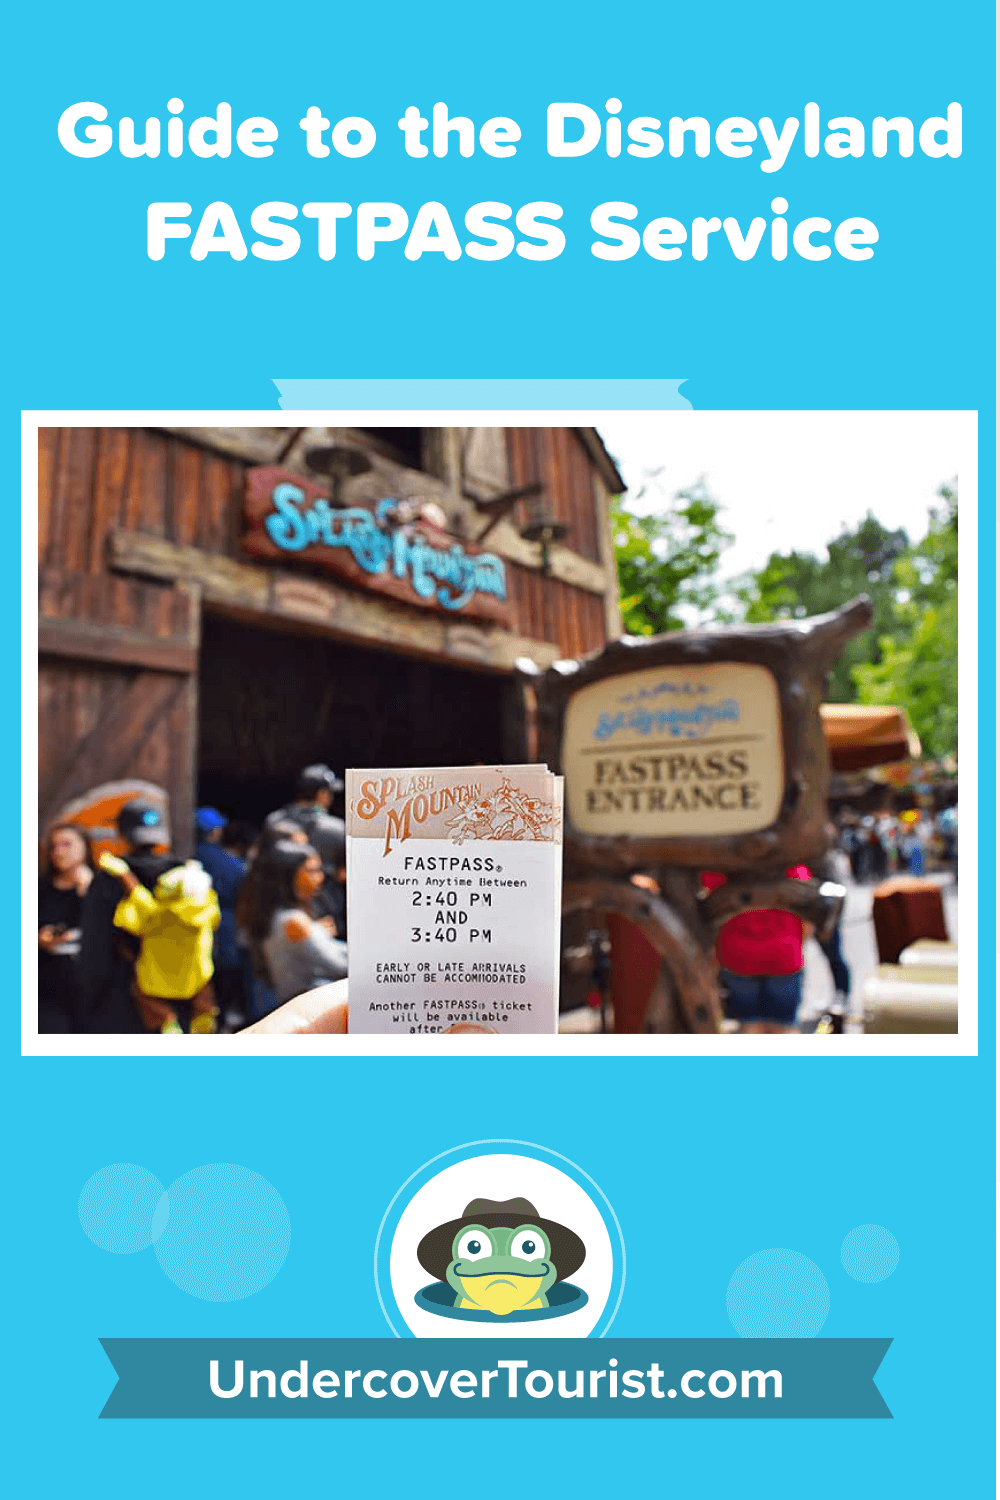 Guide to the Disneyland FASTPASS Service - Pinterest